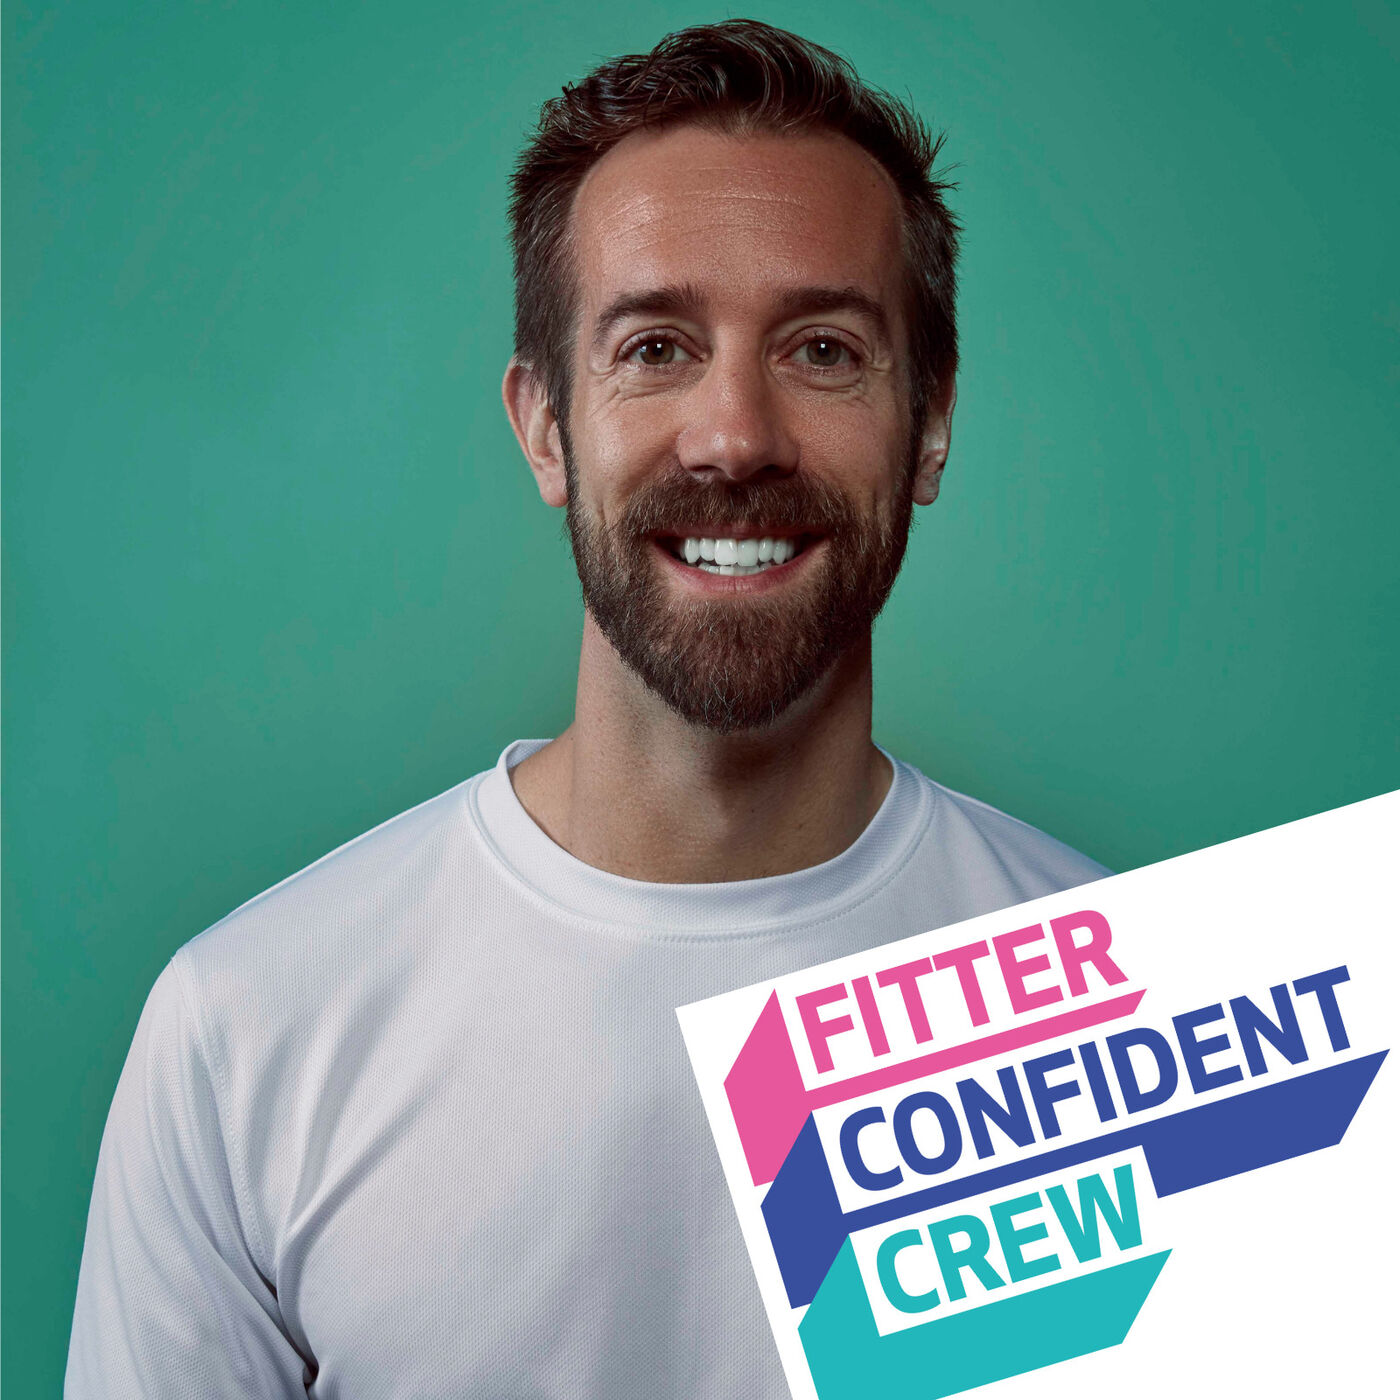 Fitter Confident Crew: Getting Started!